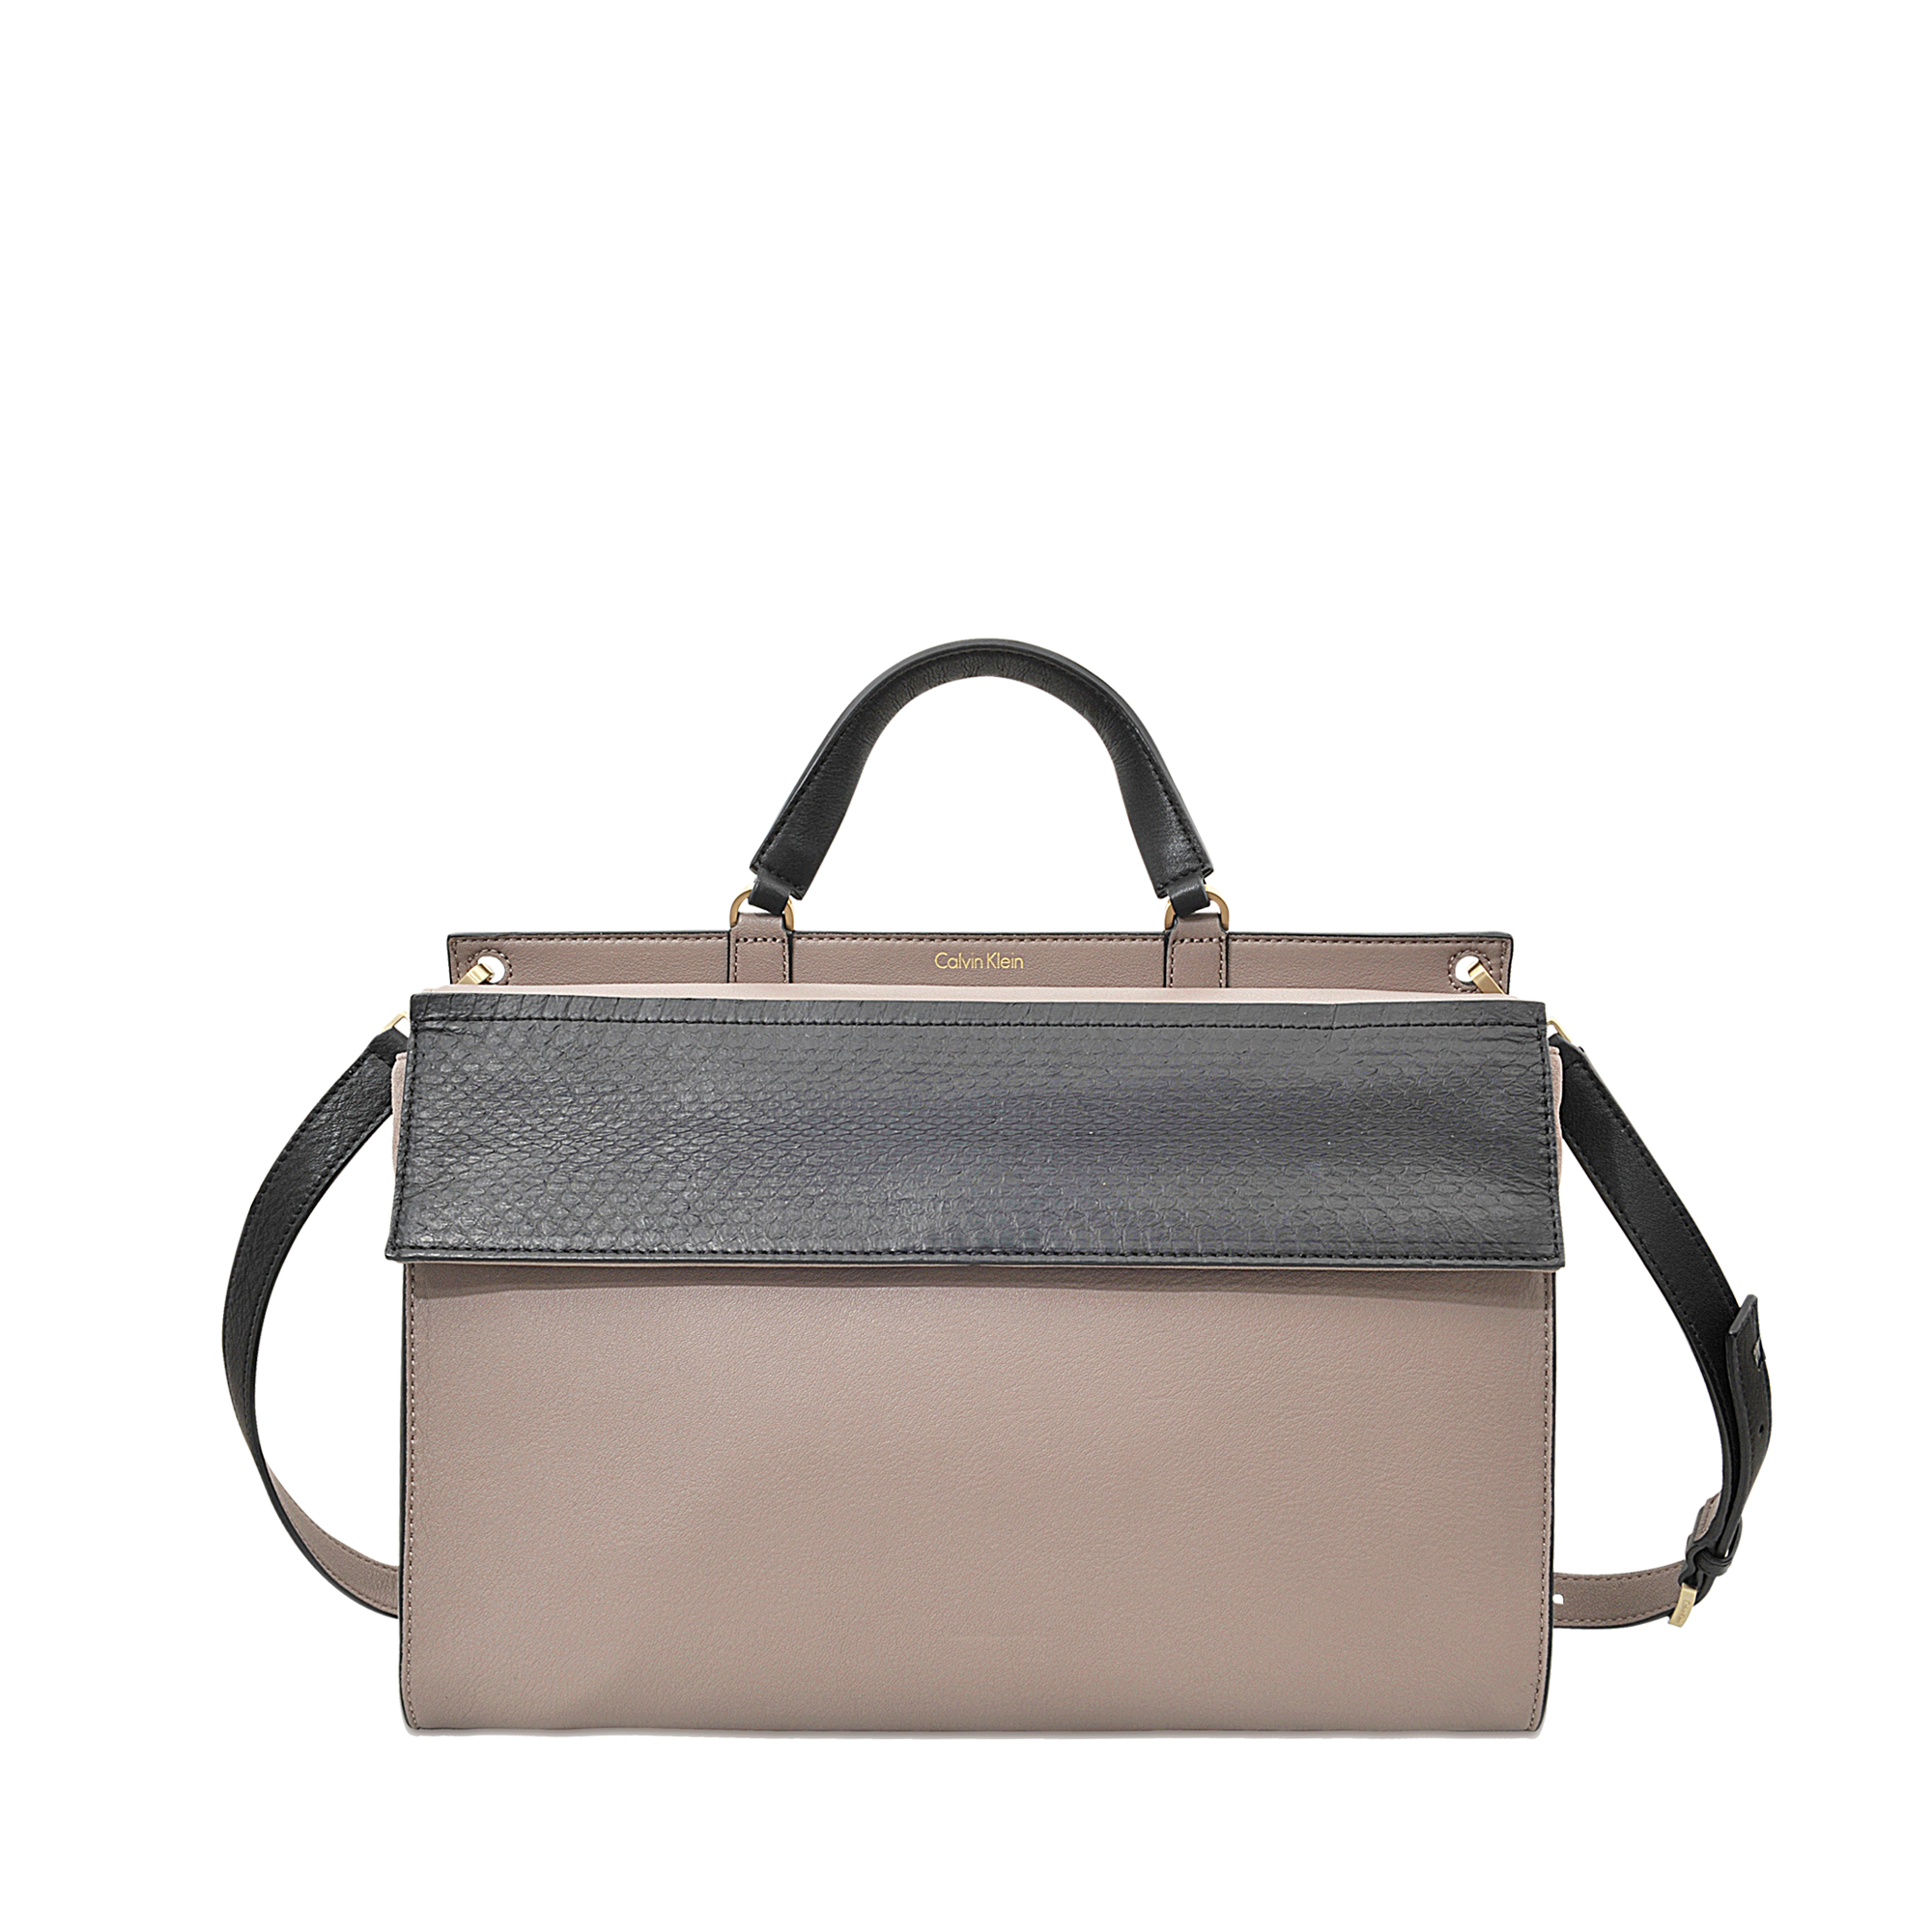 Simple Calvin Klein Bags Collection For Women  NationTrendzCom